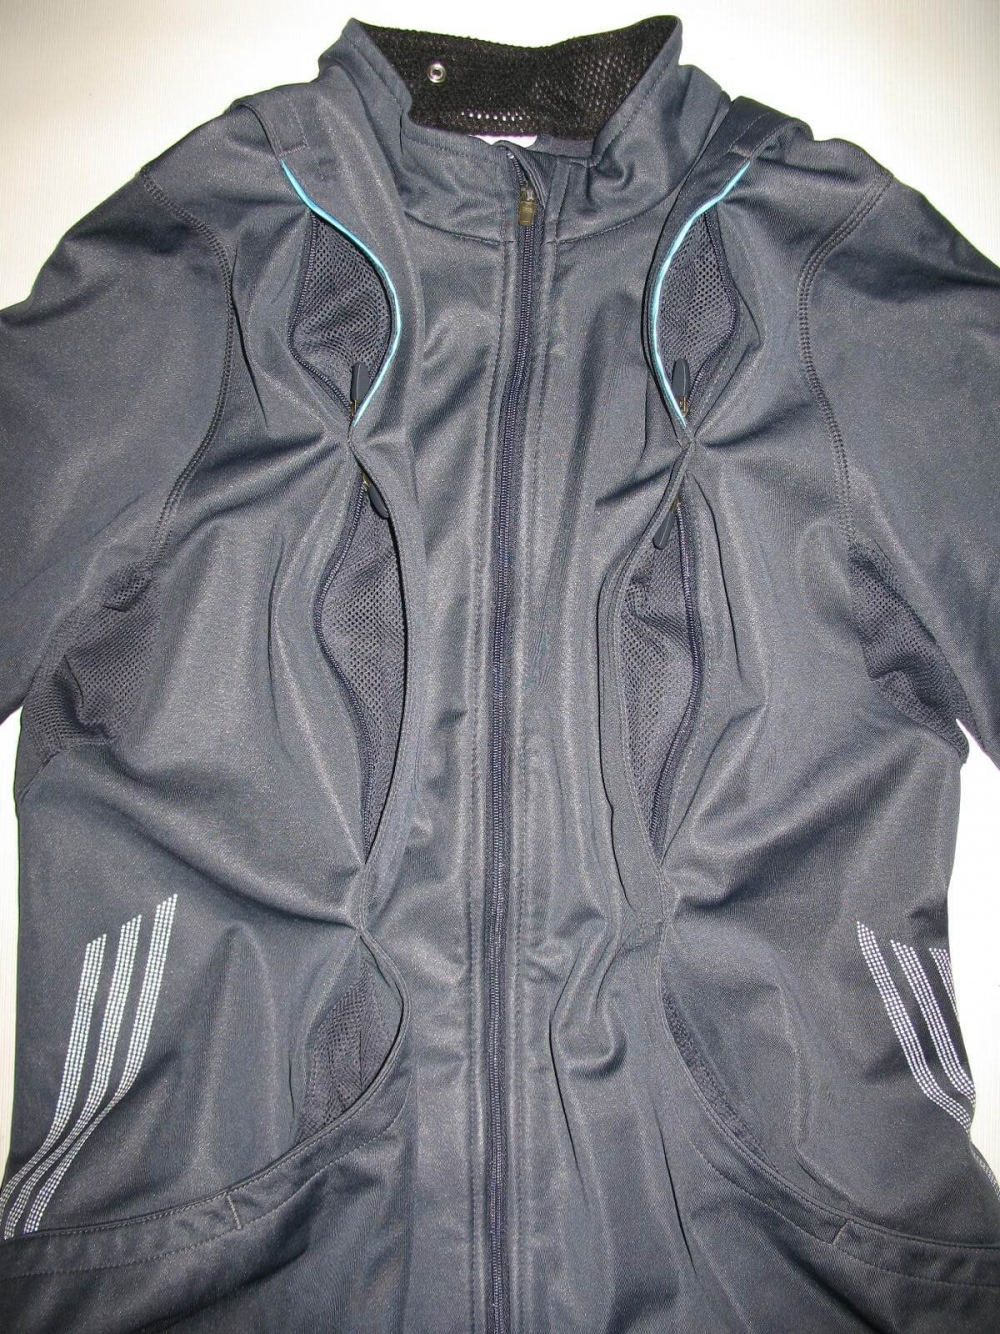 Куртка ADIDAS climaproof windstopper jacket lady (размер М) - 3